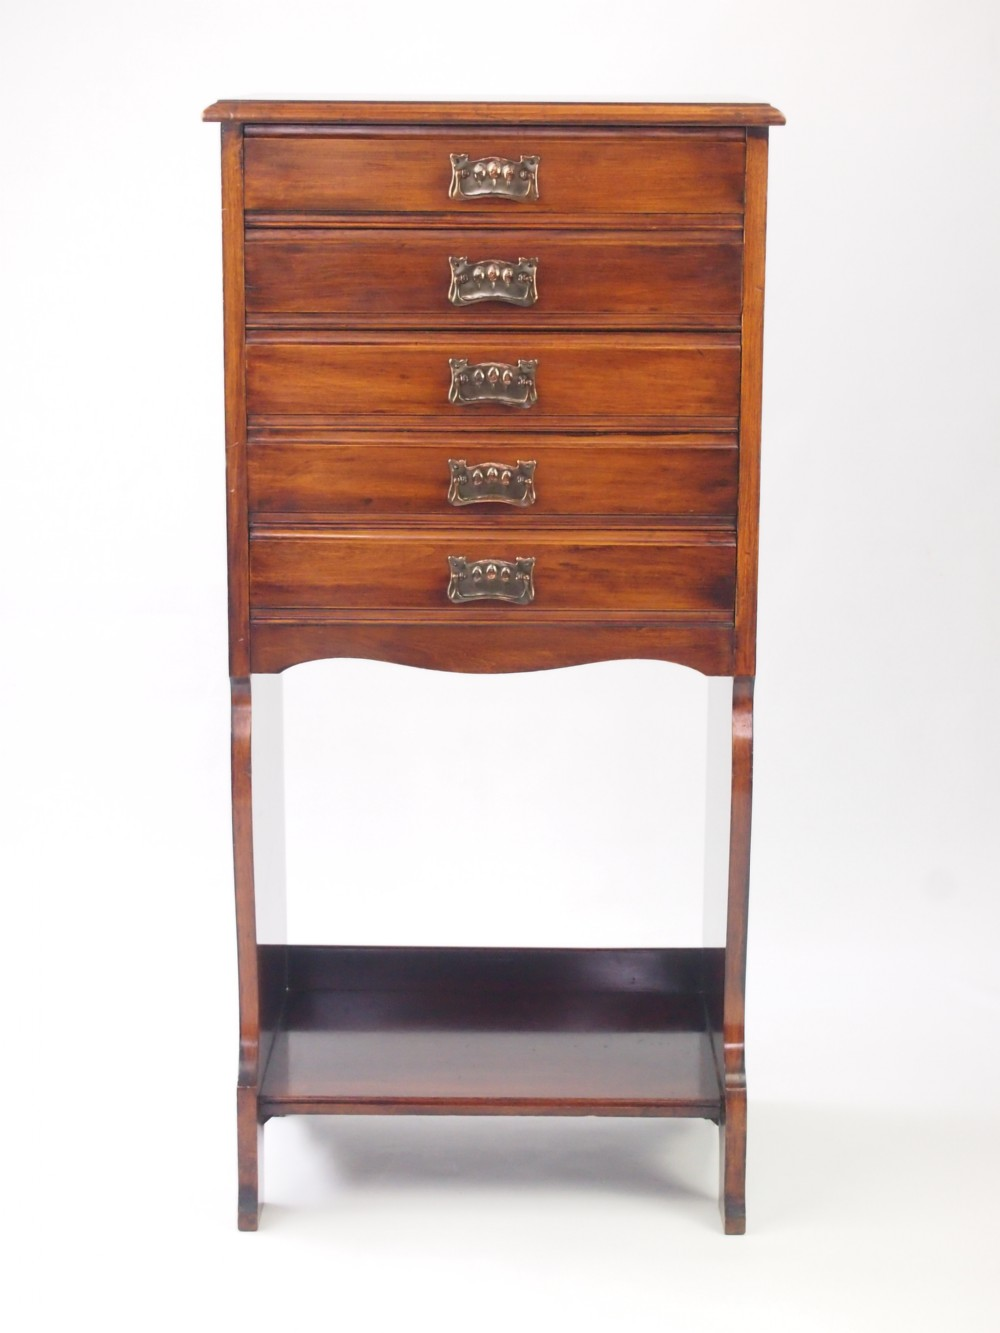 Antique Music Cabinets For Images - Edwardian Music Cabinet Www.redglobalmx.org